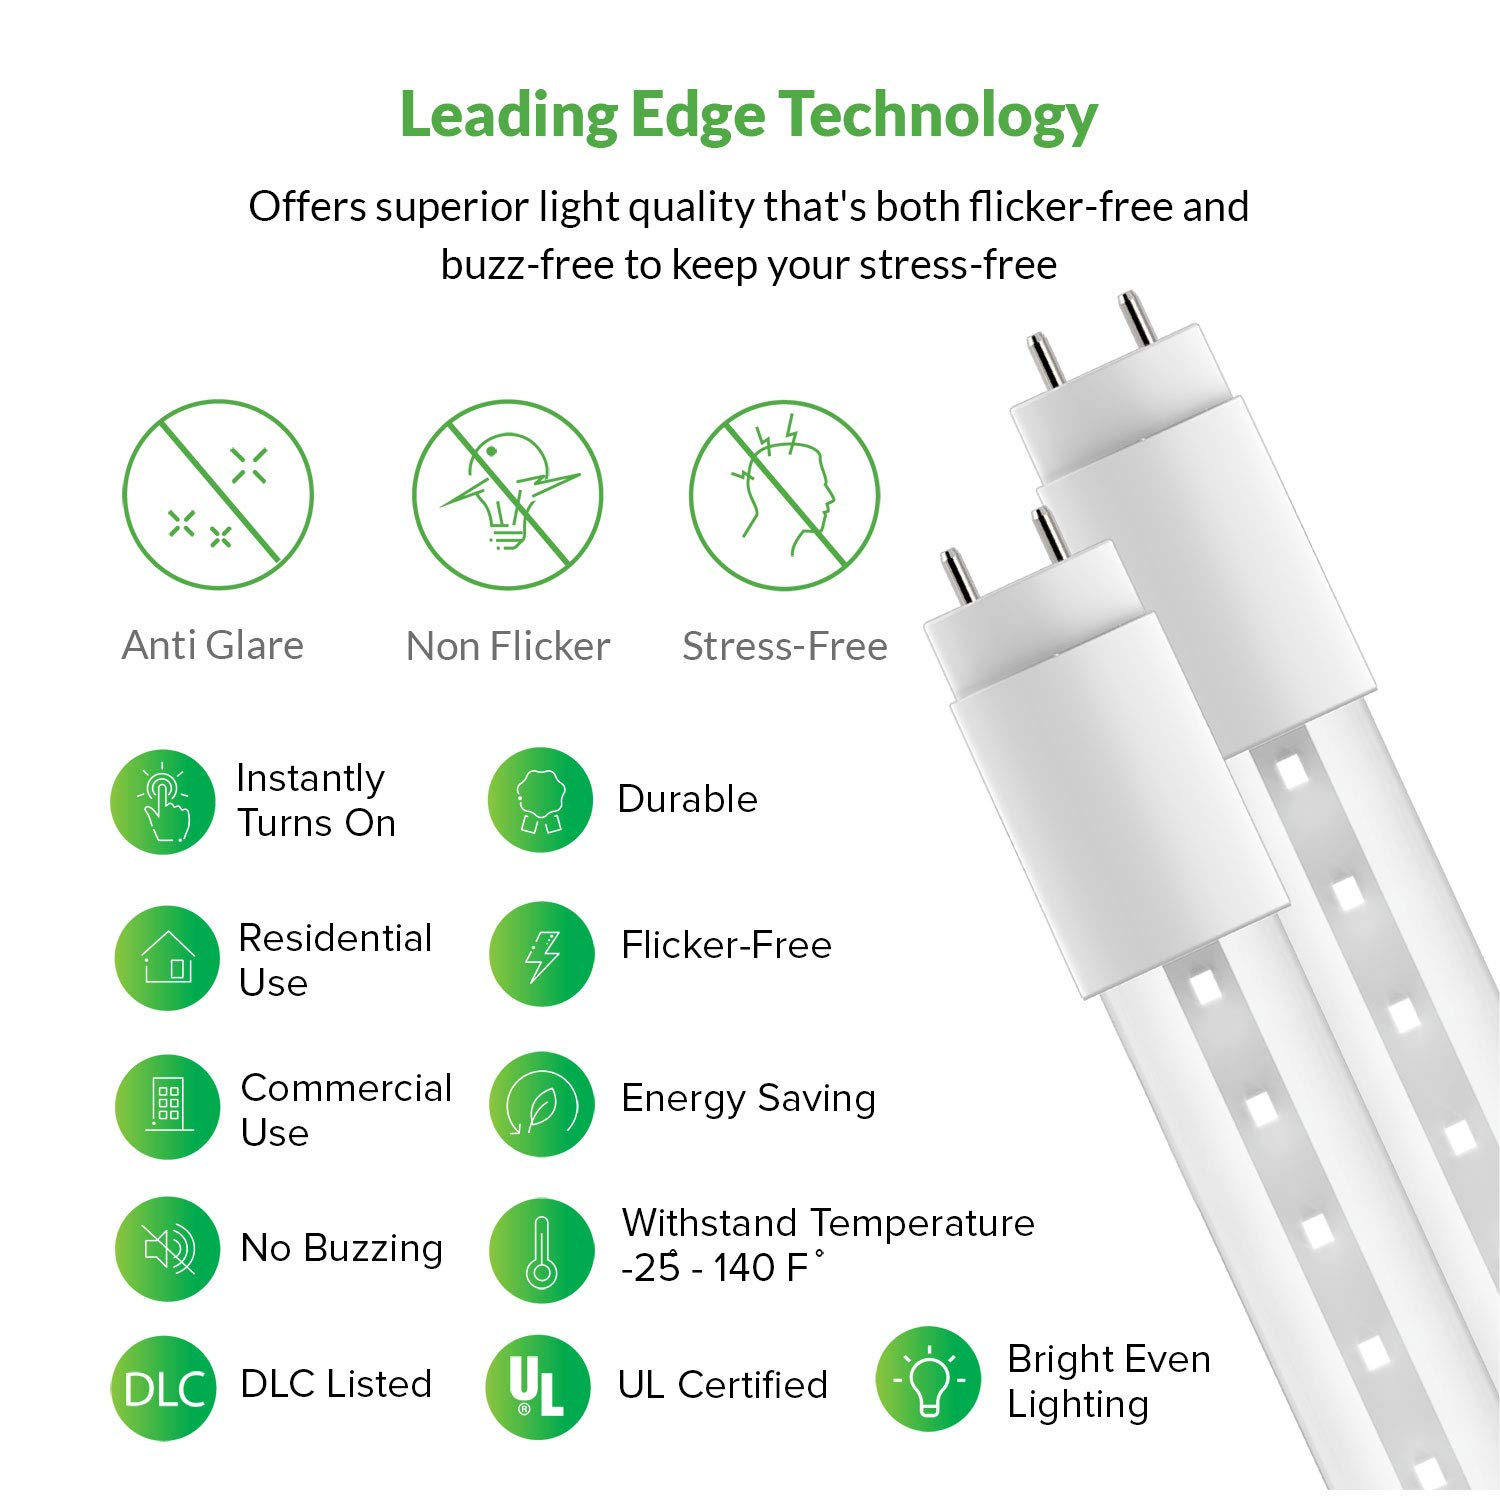 Sunco Lighting 10 Pack 4ft 48 Inch T8 Tube Led Light Bulbs 18 Watt Dual Lite Emergency Ballast Wiring Diagram 40 Equivalent Clear 5000k Kelvin Daylight 2200lm Bright White Single Sided